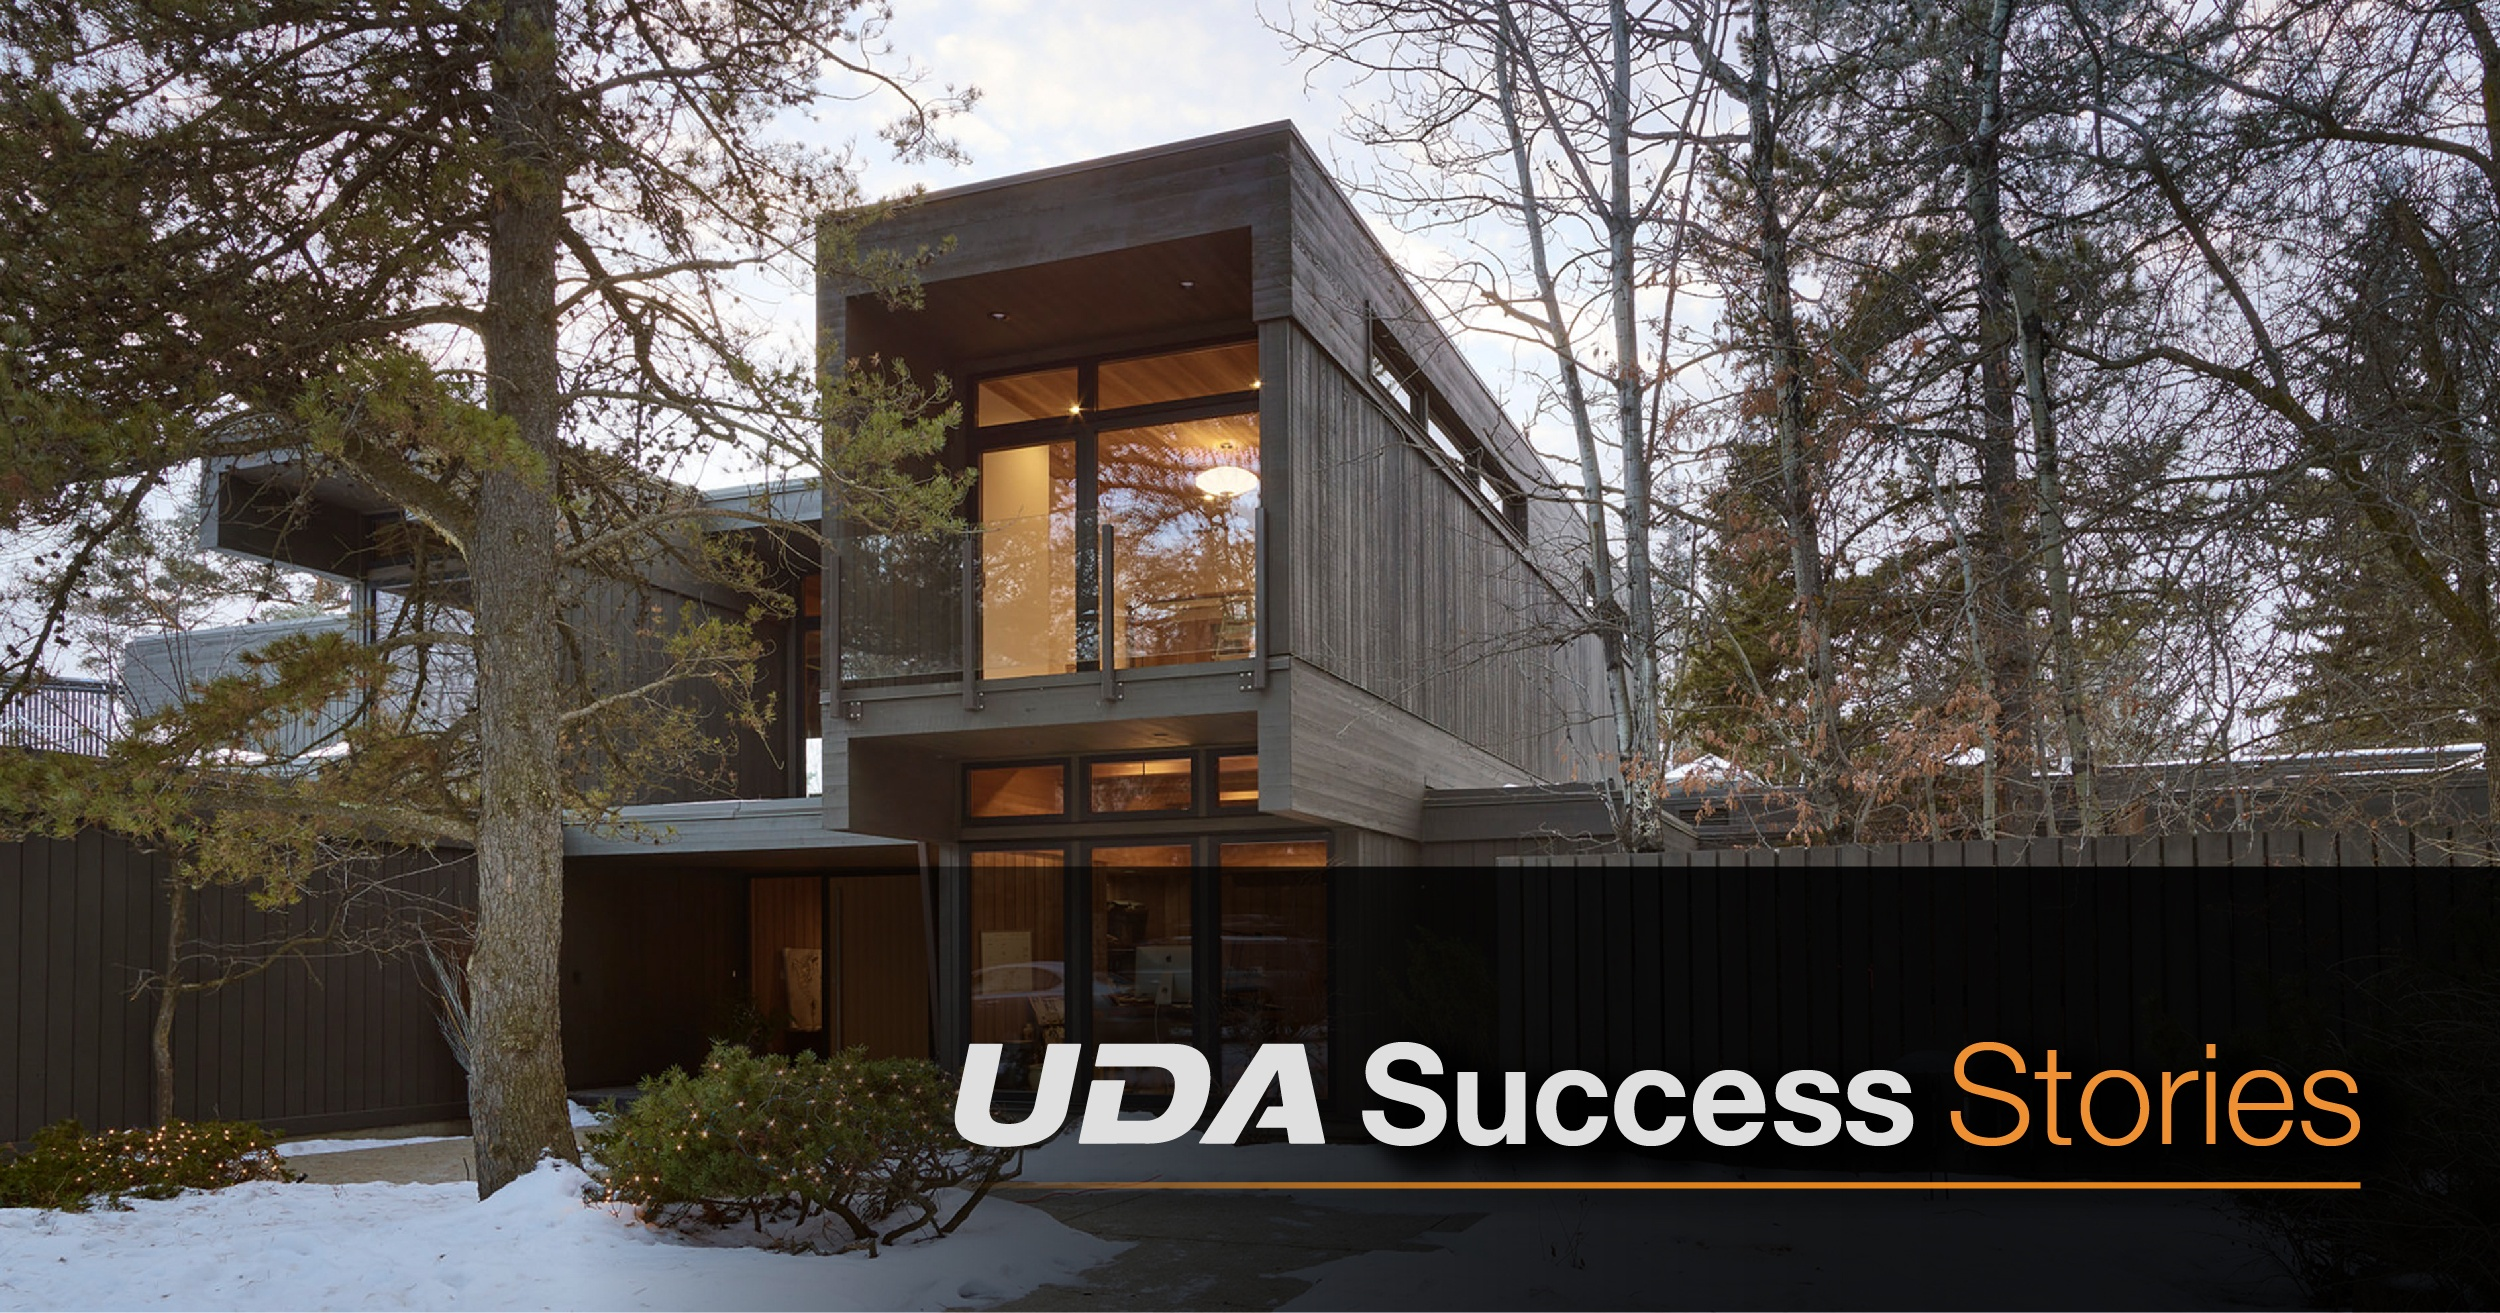 Client Success Stories Featured on New UDA Technologies Blog